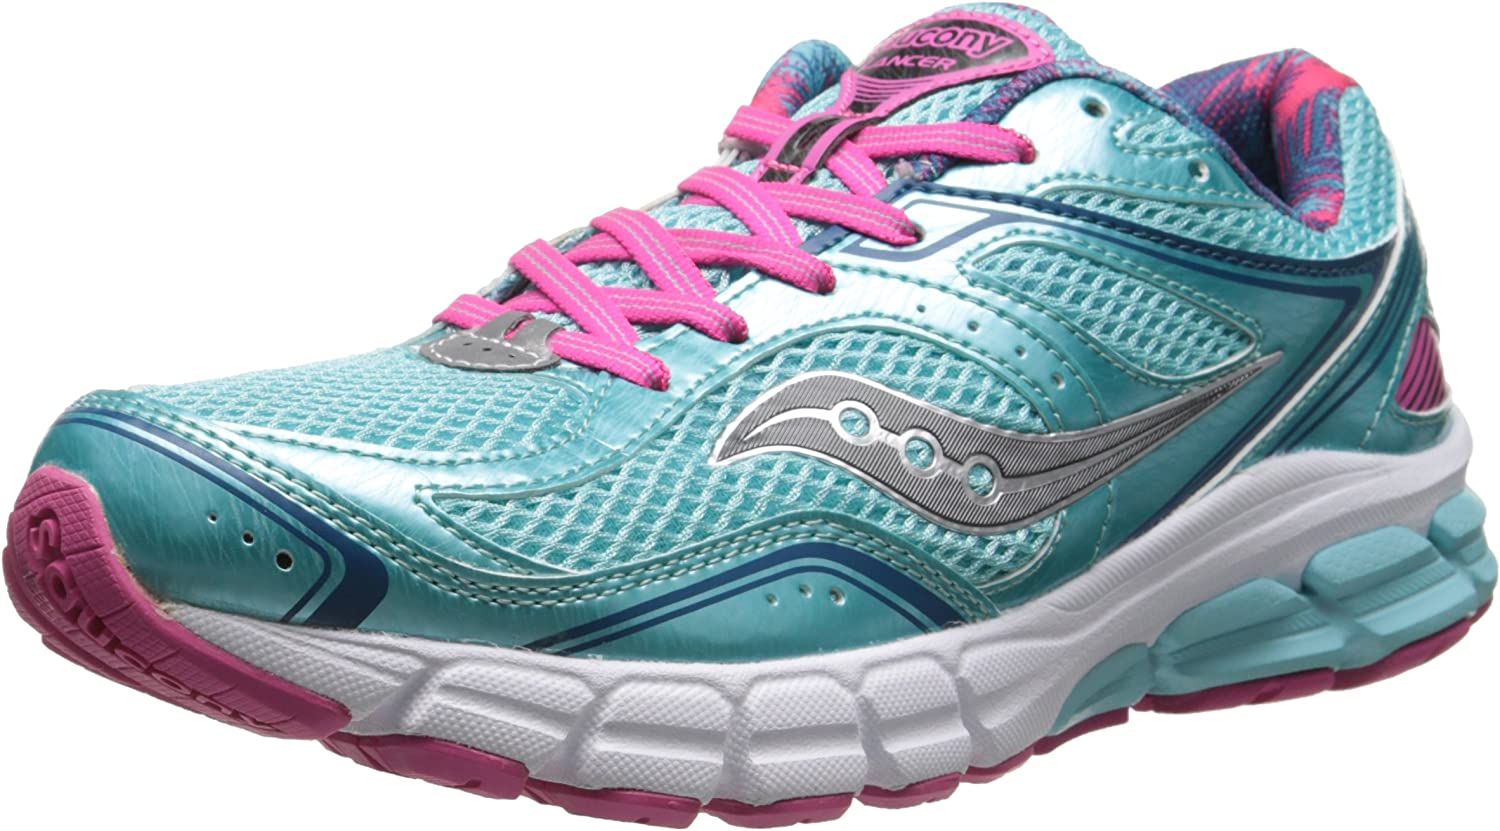 Saucony Women's Lancer Running shoes